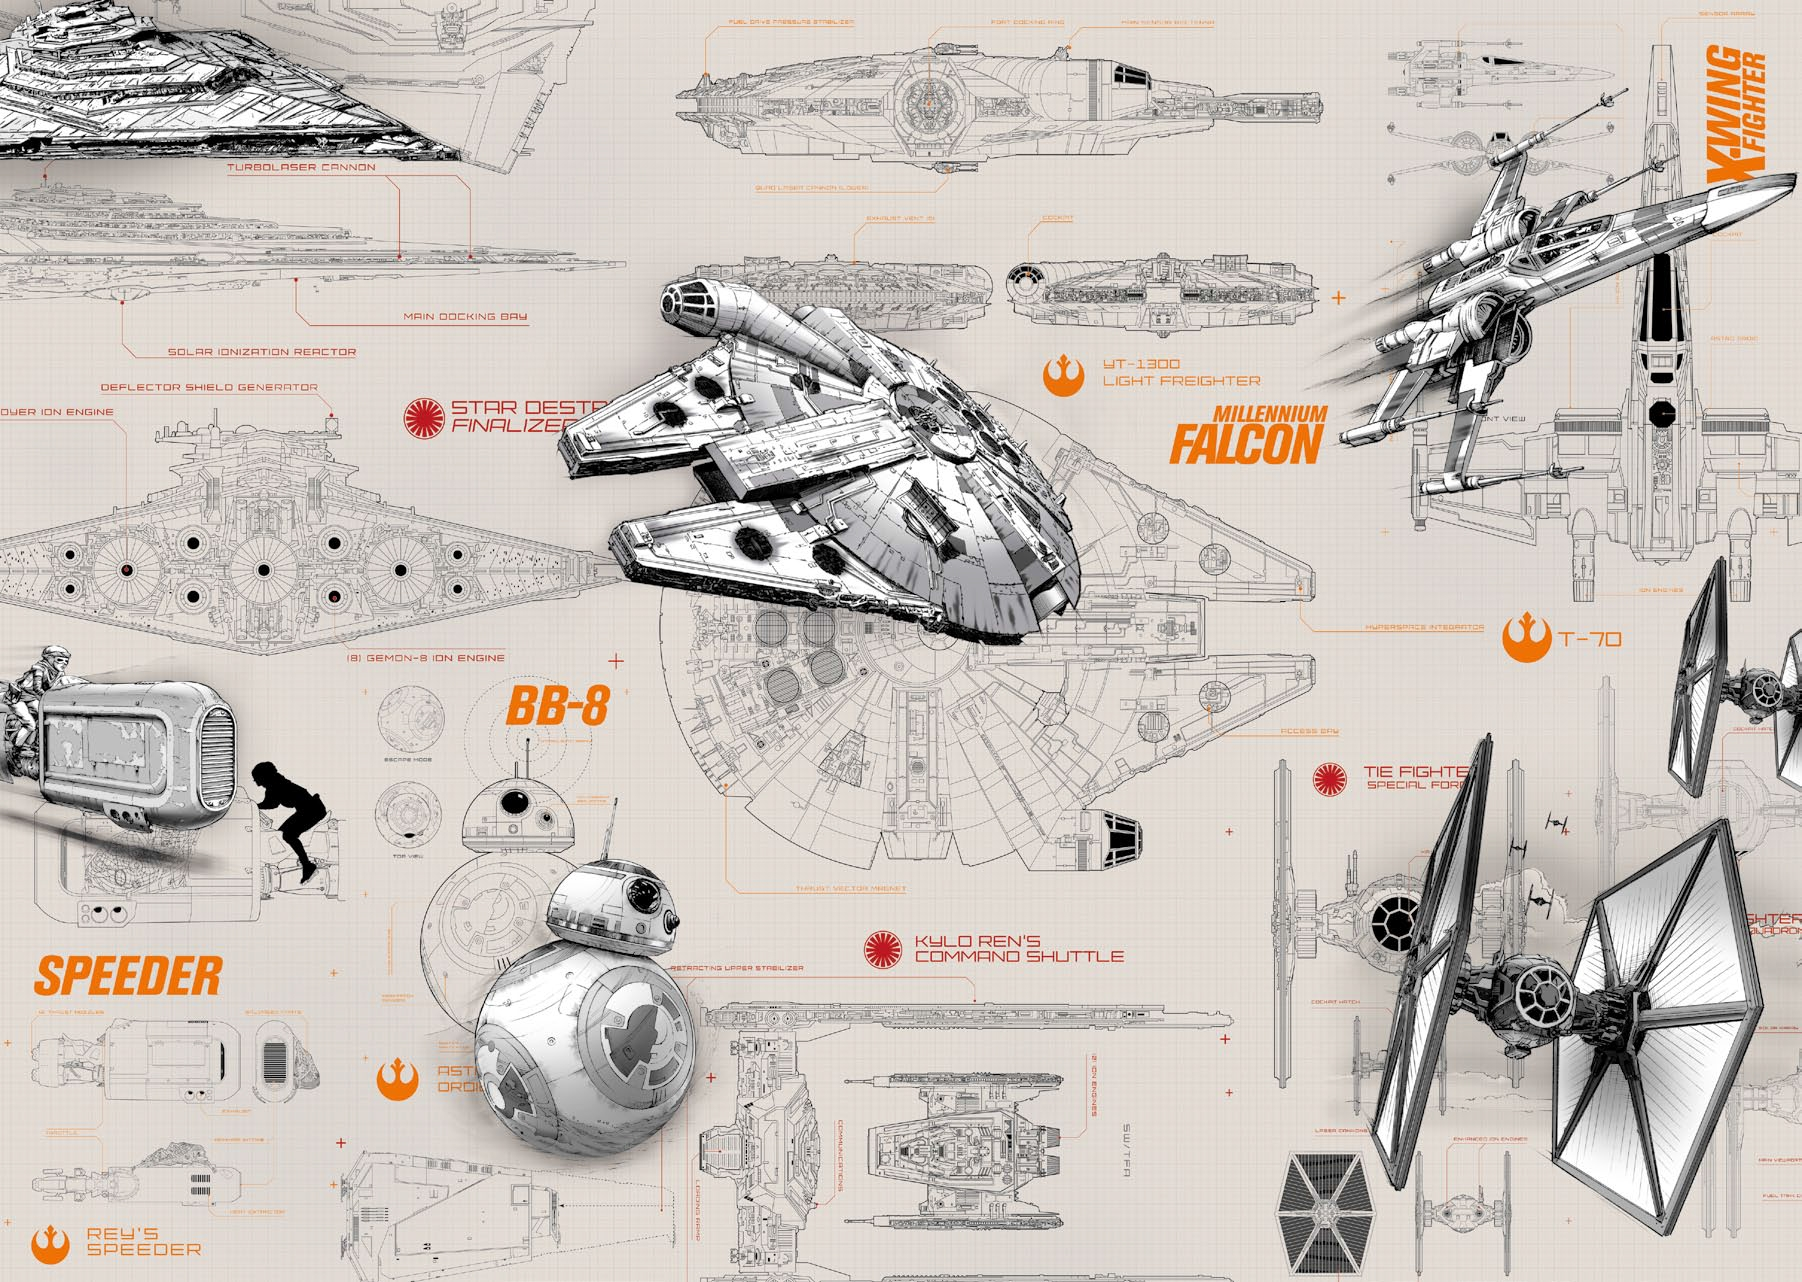 Tapisserie Mickey Finest Poster Xxl Star Wars Blueprints Panoramique Komar